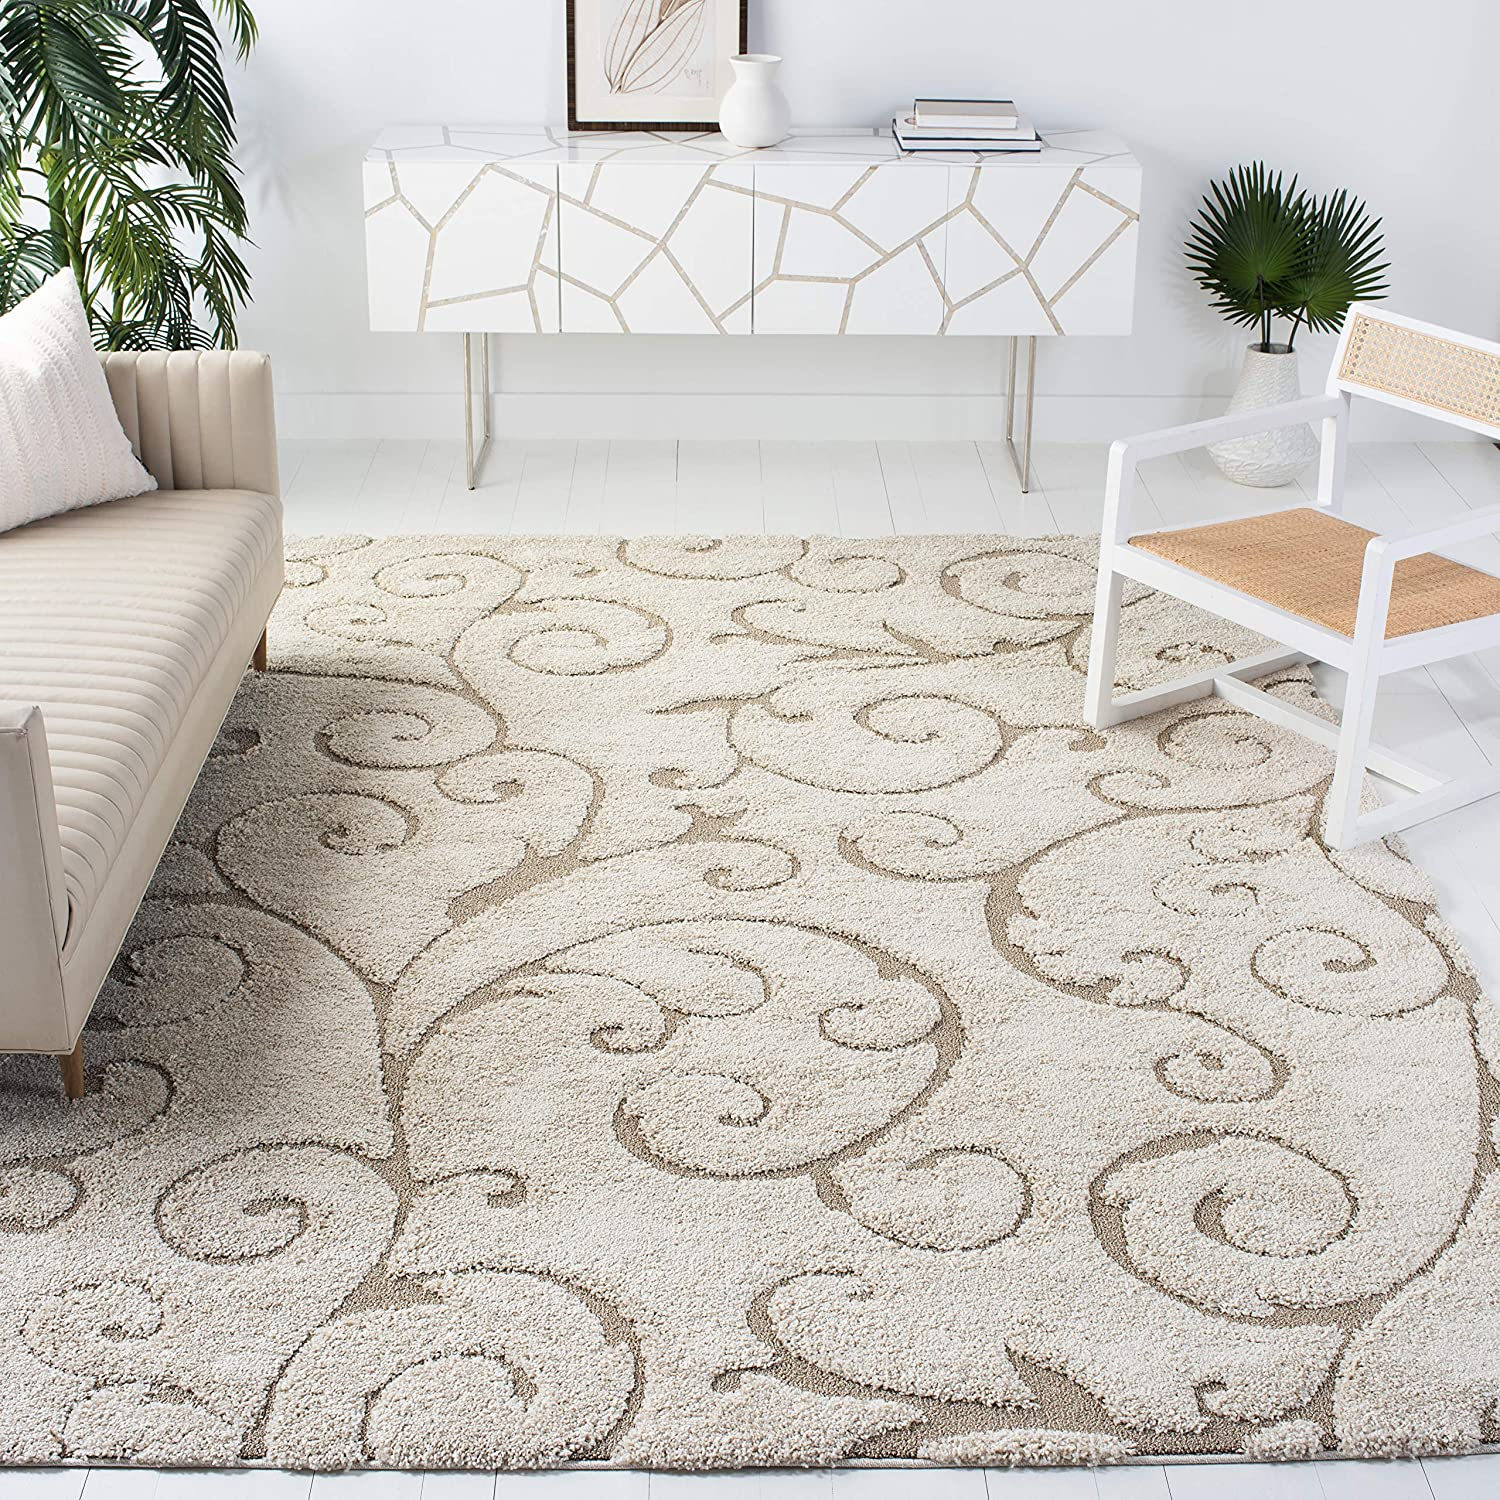 Safavieh Florida Shag Collection SG455-1113 Scrolling Vine Graceful Swirl Textured 1.18-inch Thick Area Rug, 5' 3